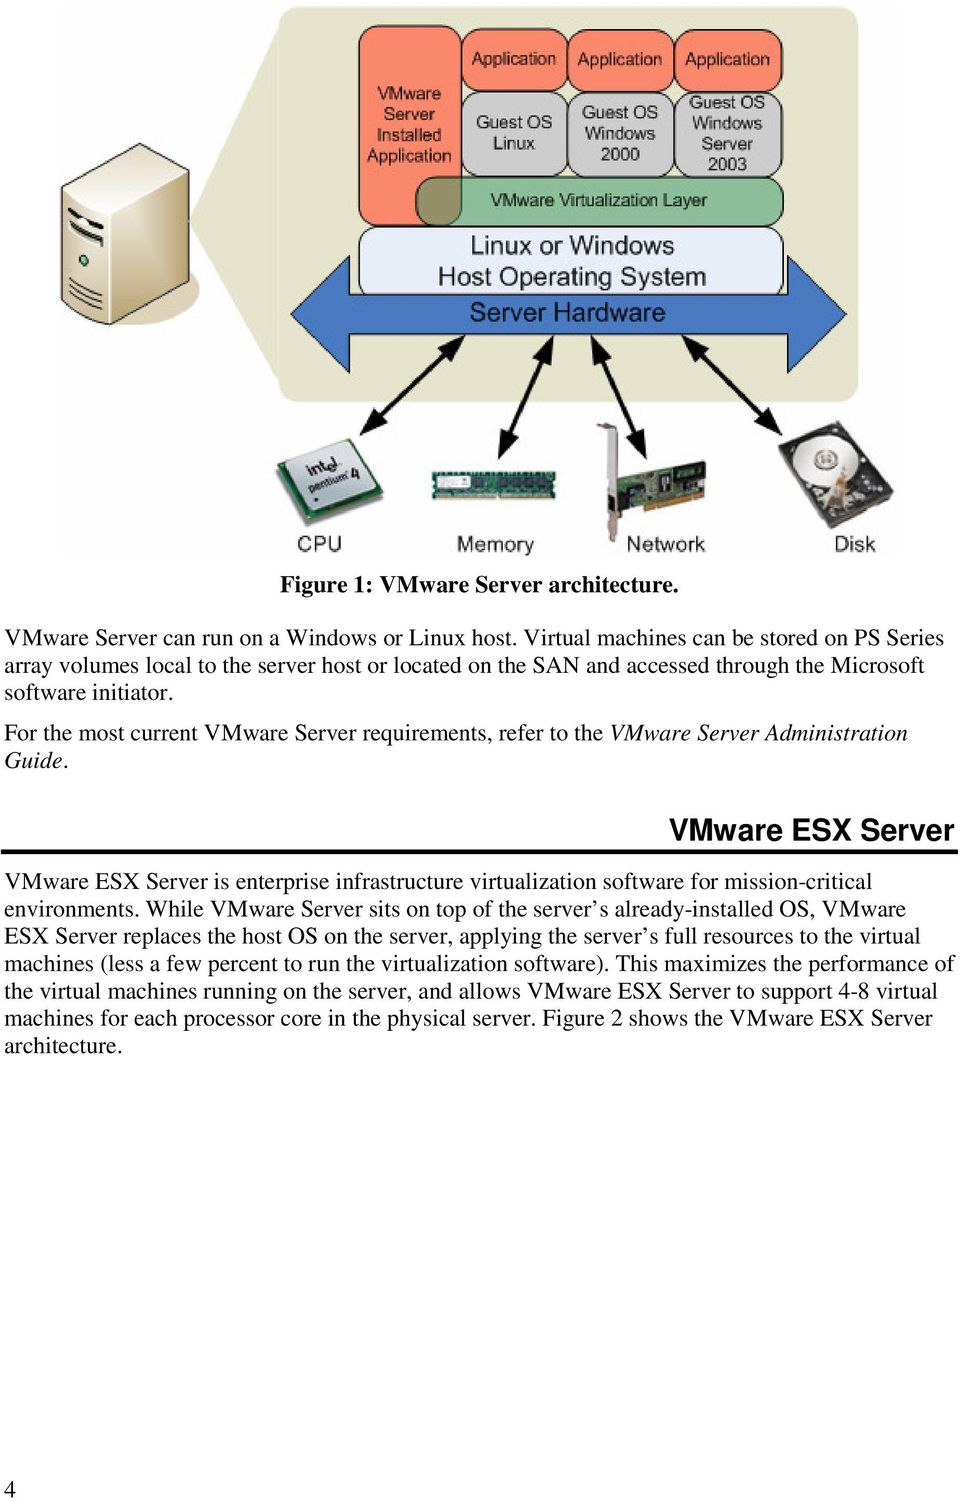 For the most current VMware Server requirements, refer to the VMware Server Administration Guide.